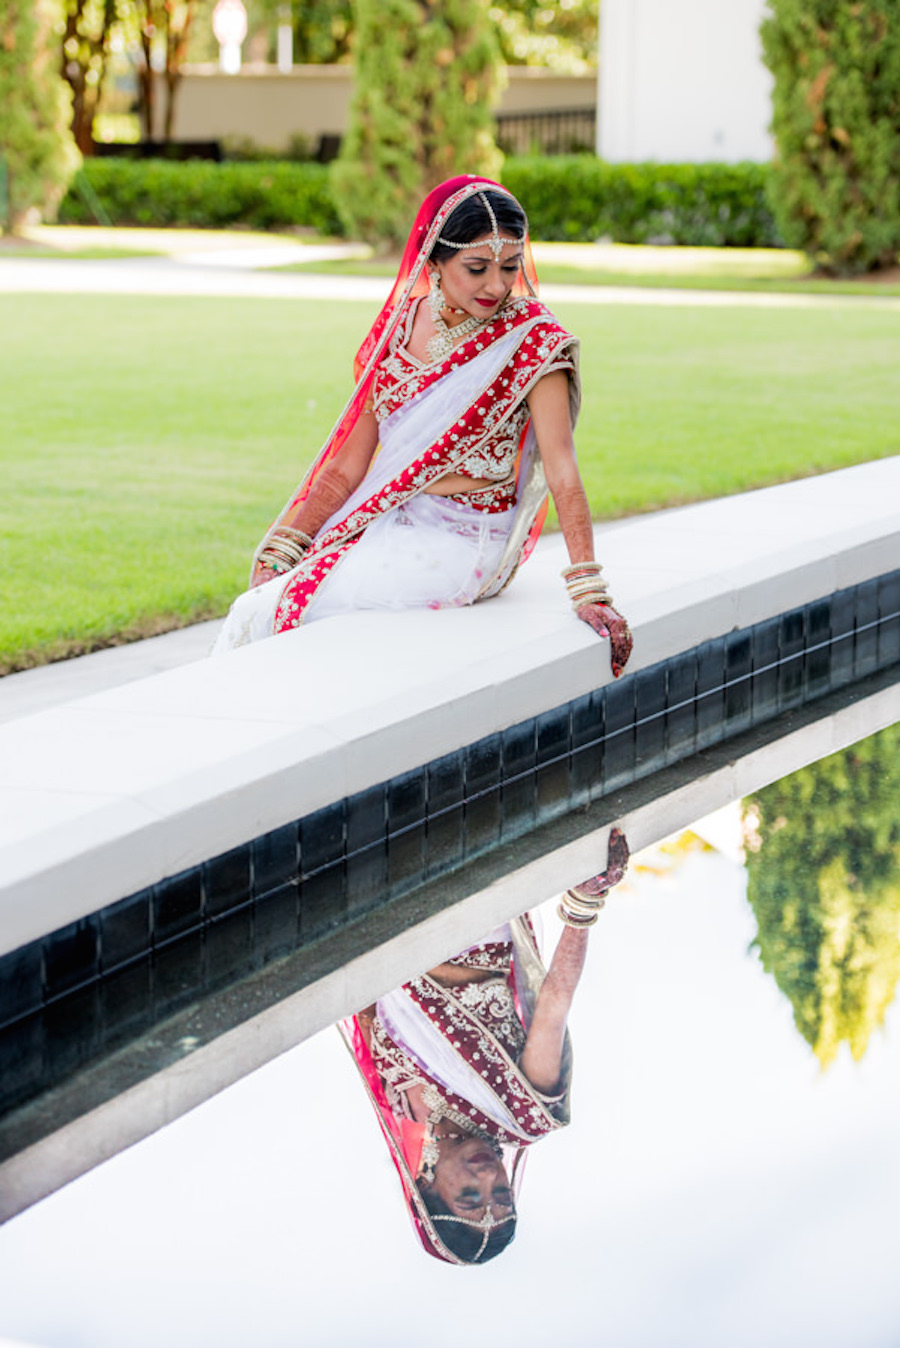 Indian Bridal Wedding Portrait in Red, Gold and White Panetar   Tampa Bay Wedding Hair and Makeup Artist Michele Renee The Studio